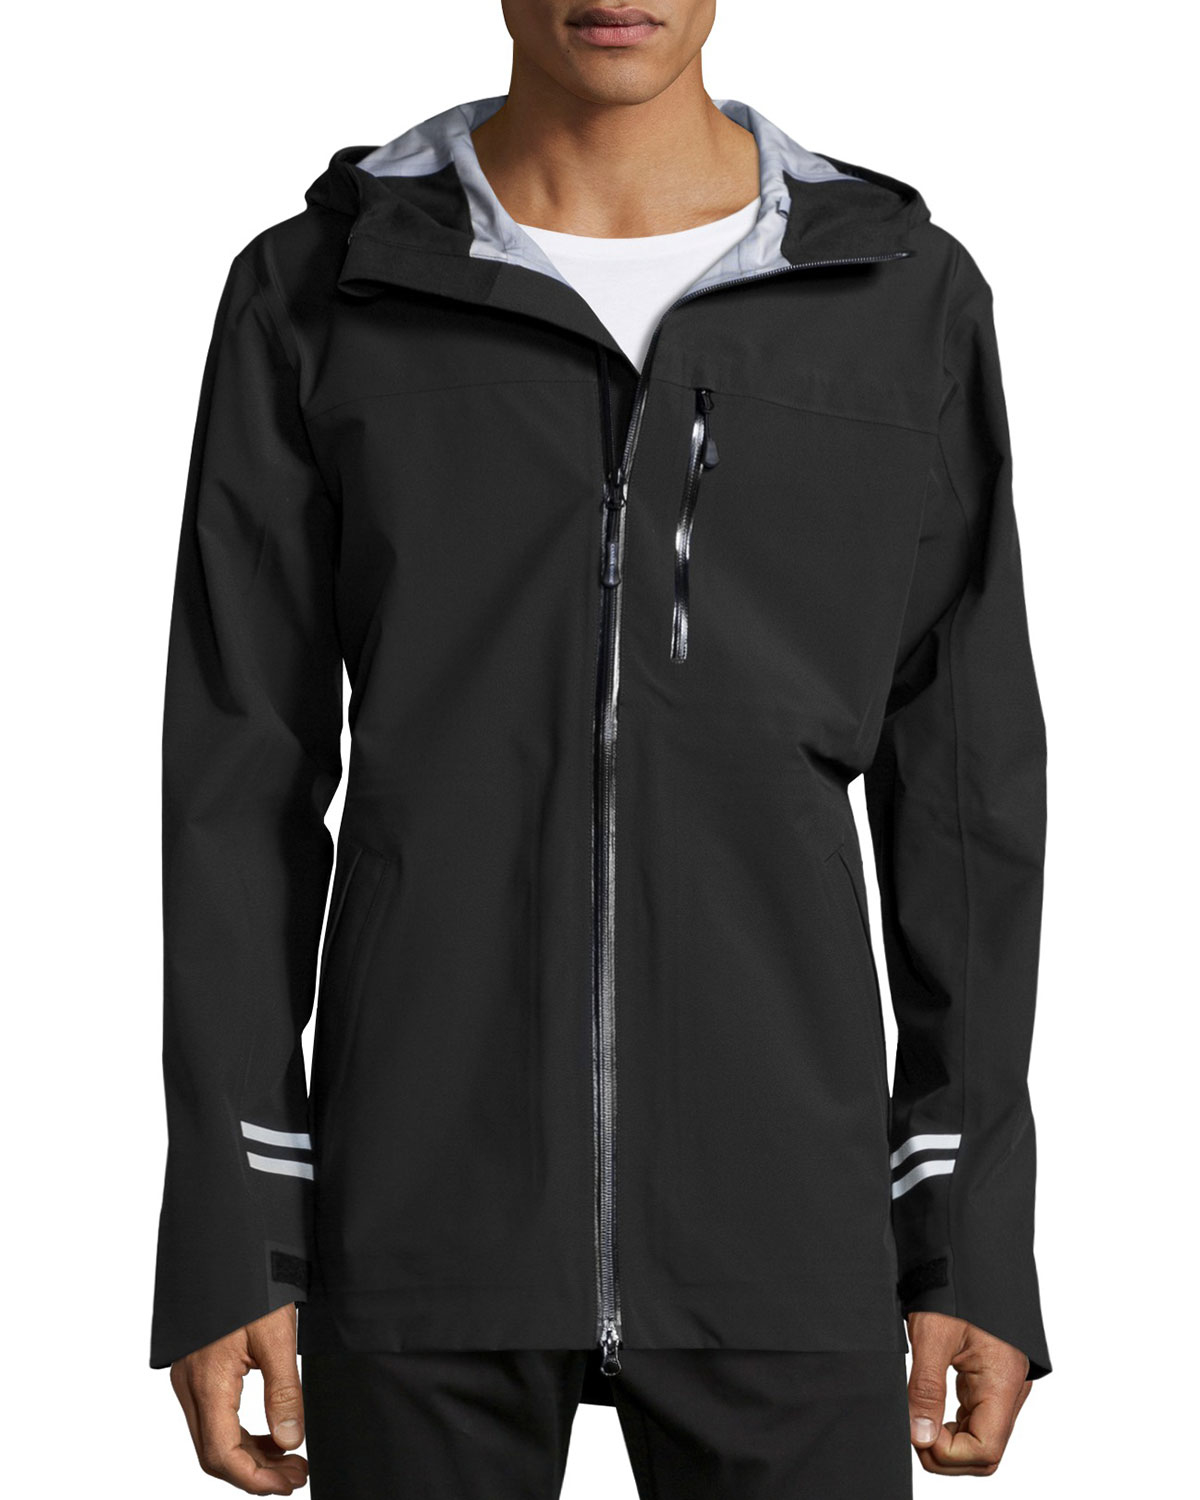 Canada Goose' Coastal Shell Jacket - Men's Medium - Black